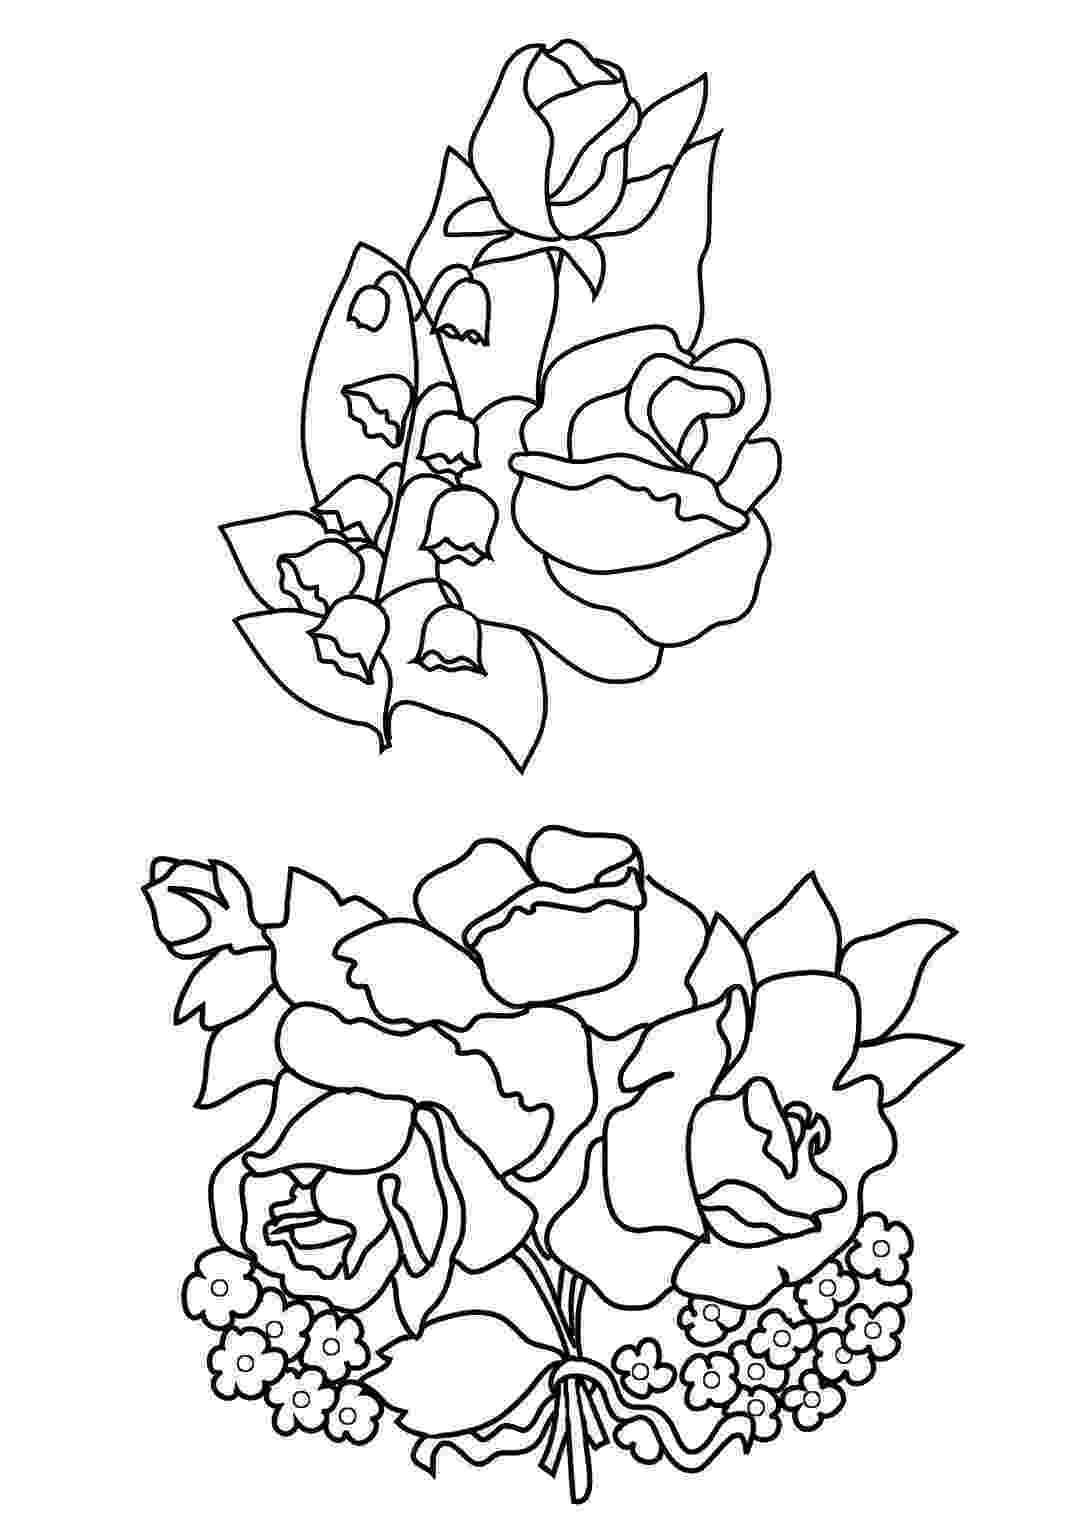 flowers color pages free printable flower coloring pages for kids best flowers color pages 1 3